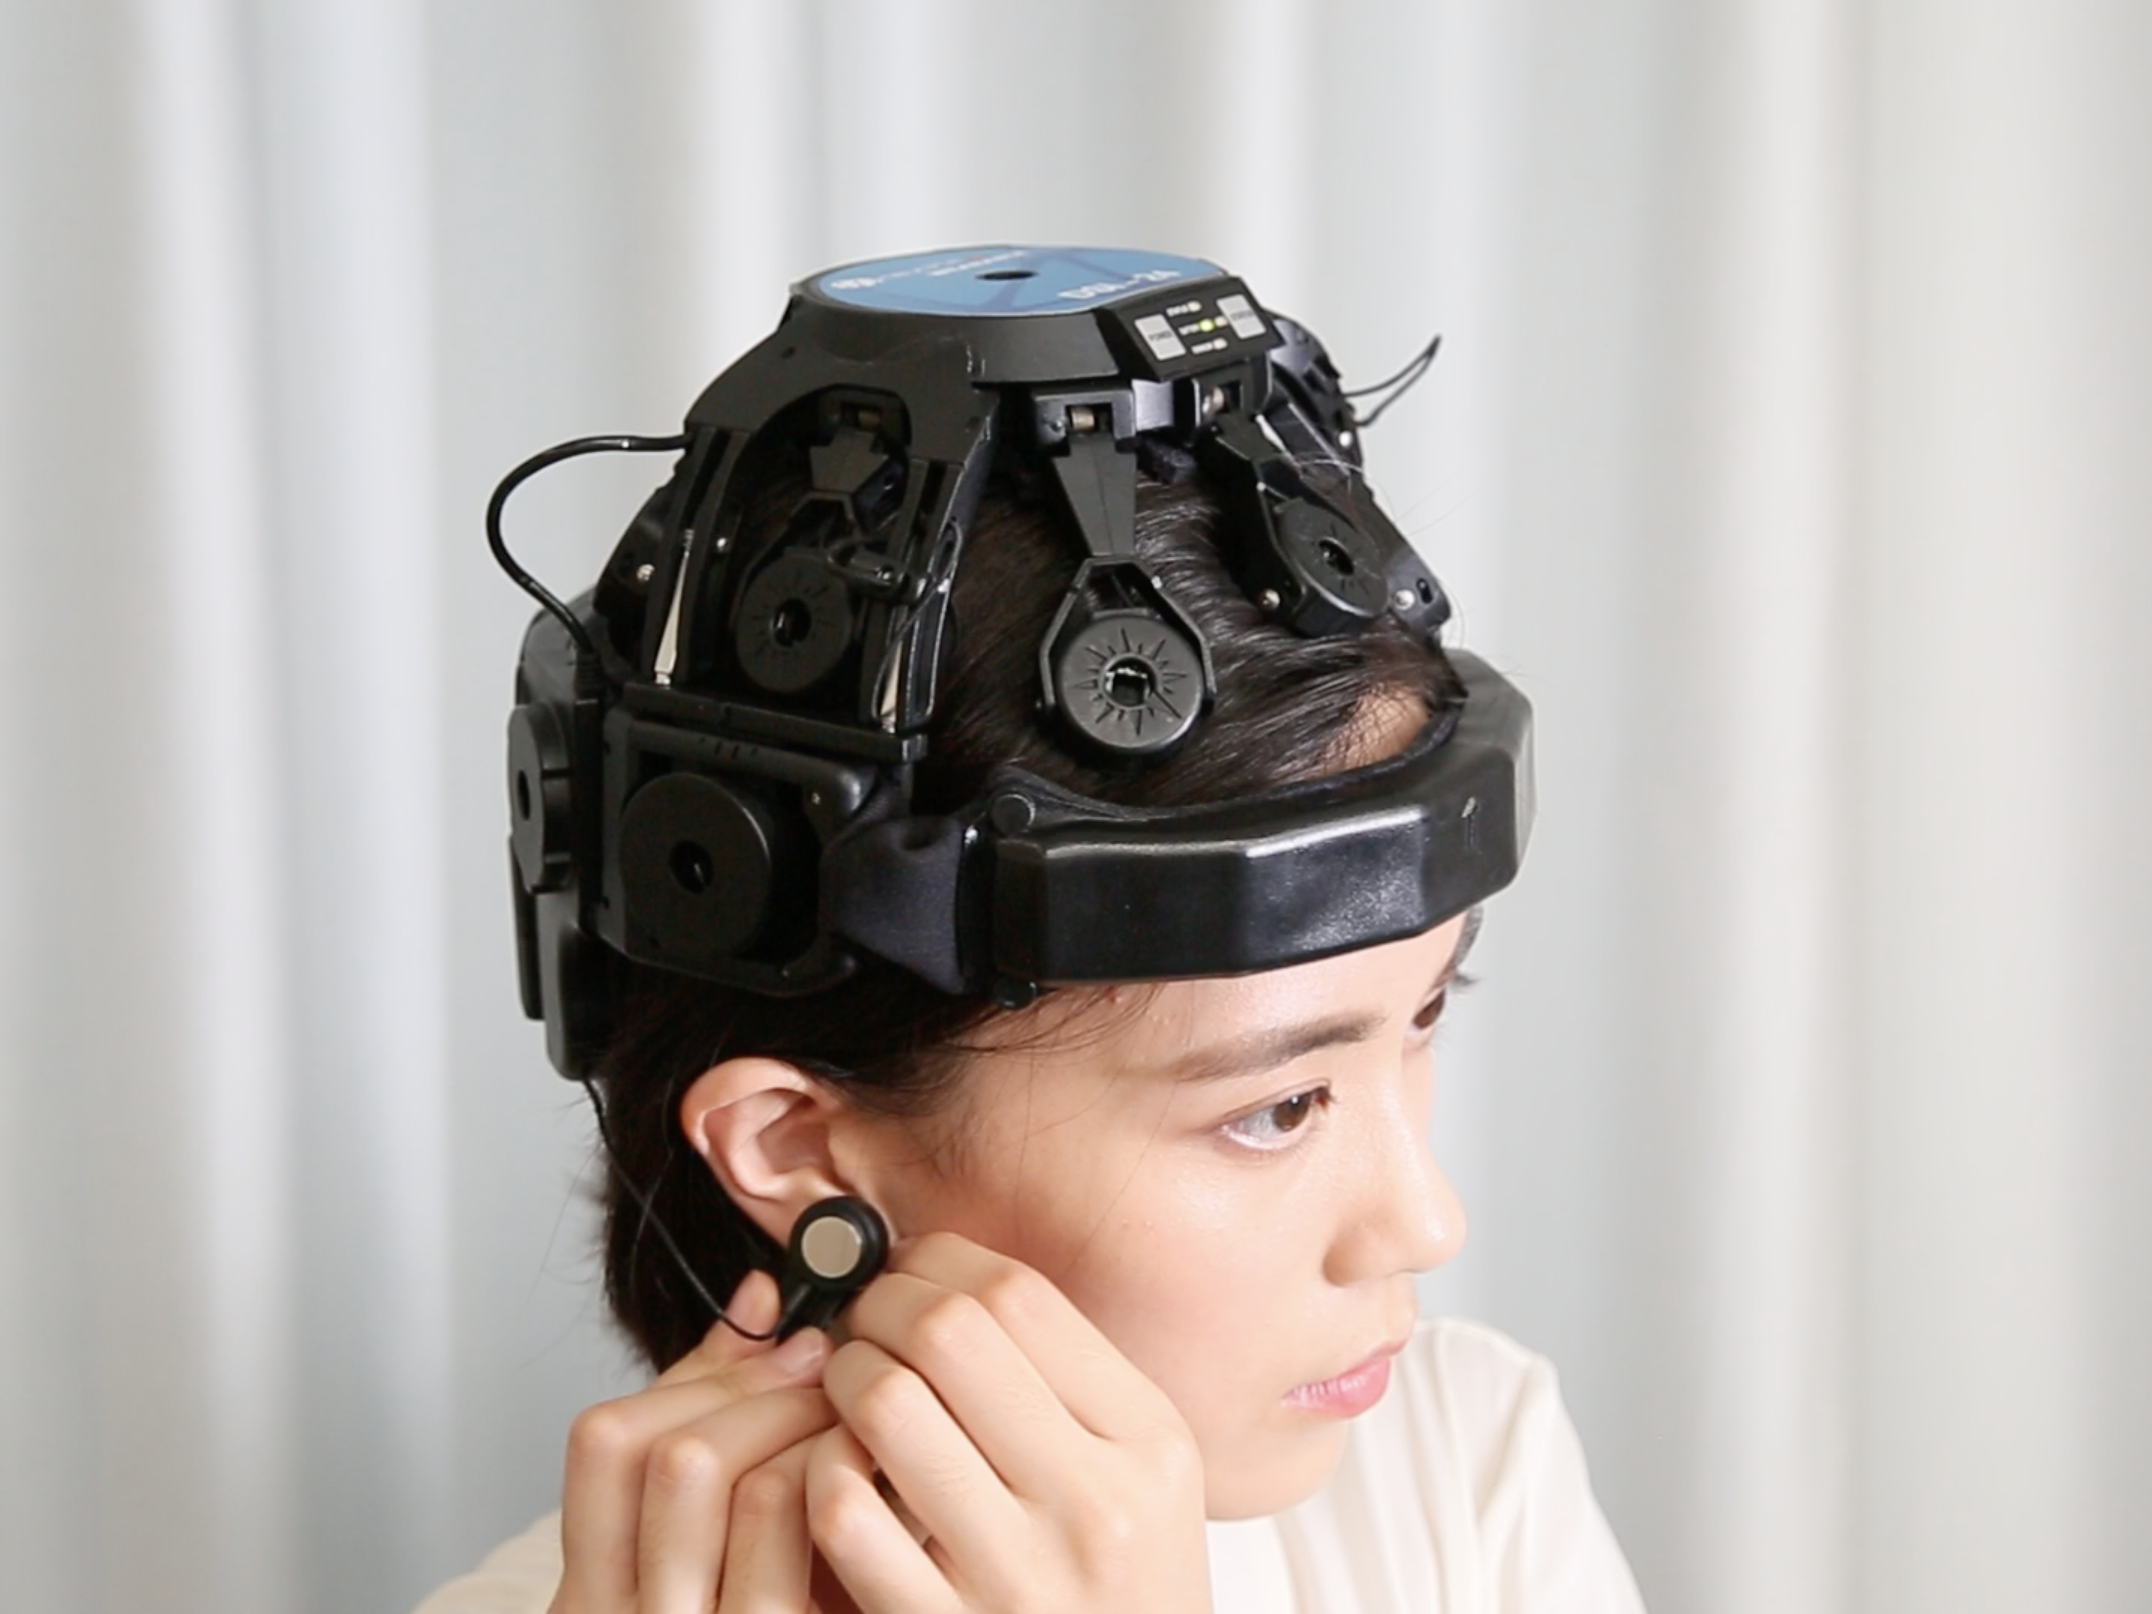 EEG-based brain-computer interface. Technology by Neuracle.